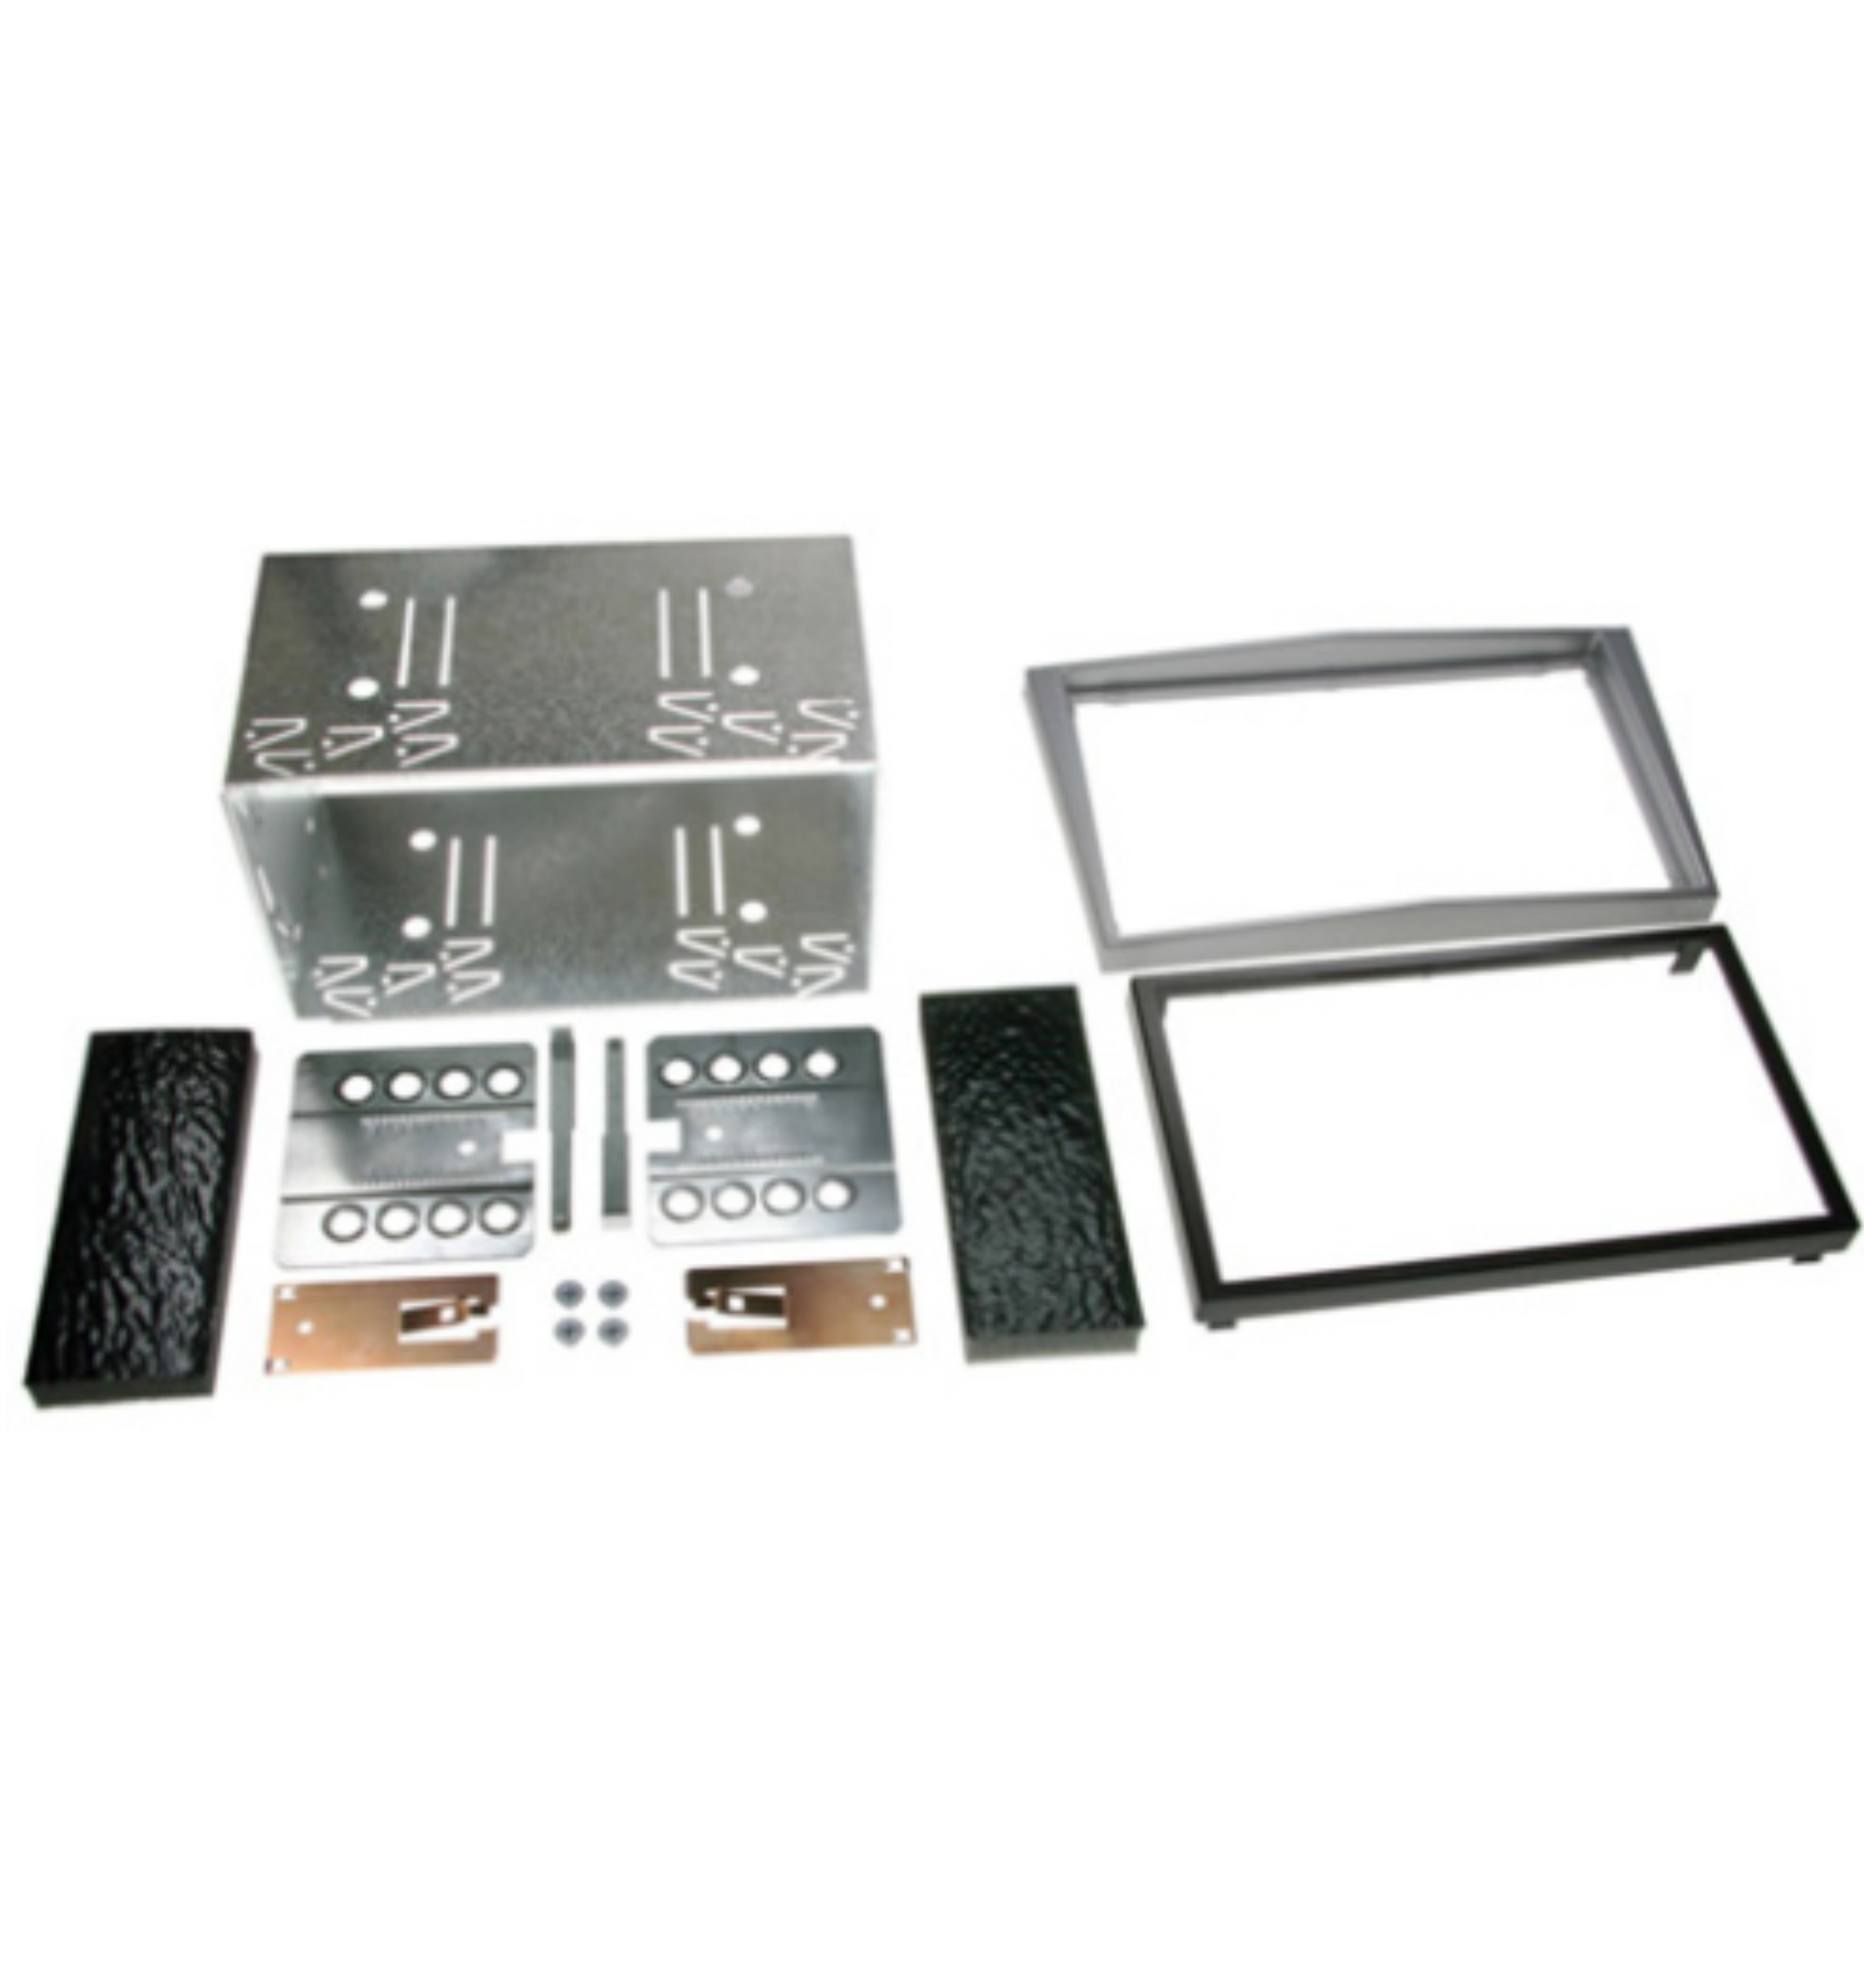 NEW C2 23VX15 Car Stereo Double Din Fascia Plate Adaptor  Vauxhall Zafira 2005>